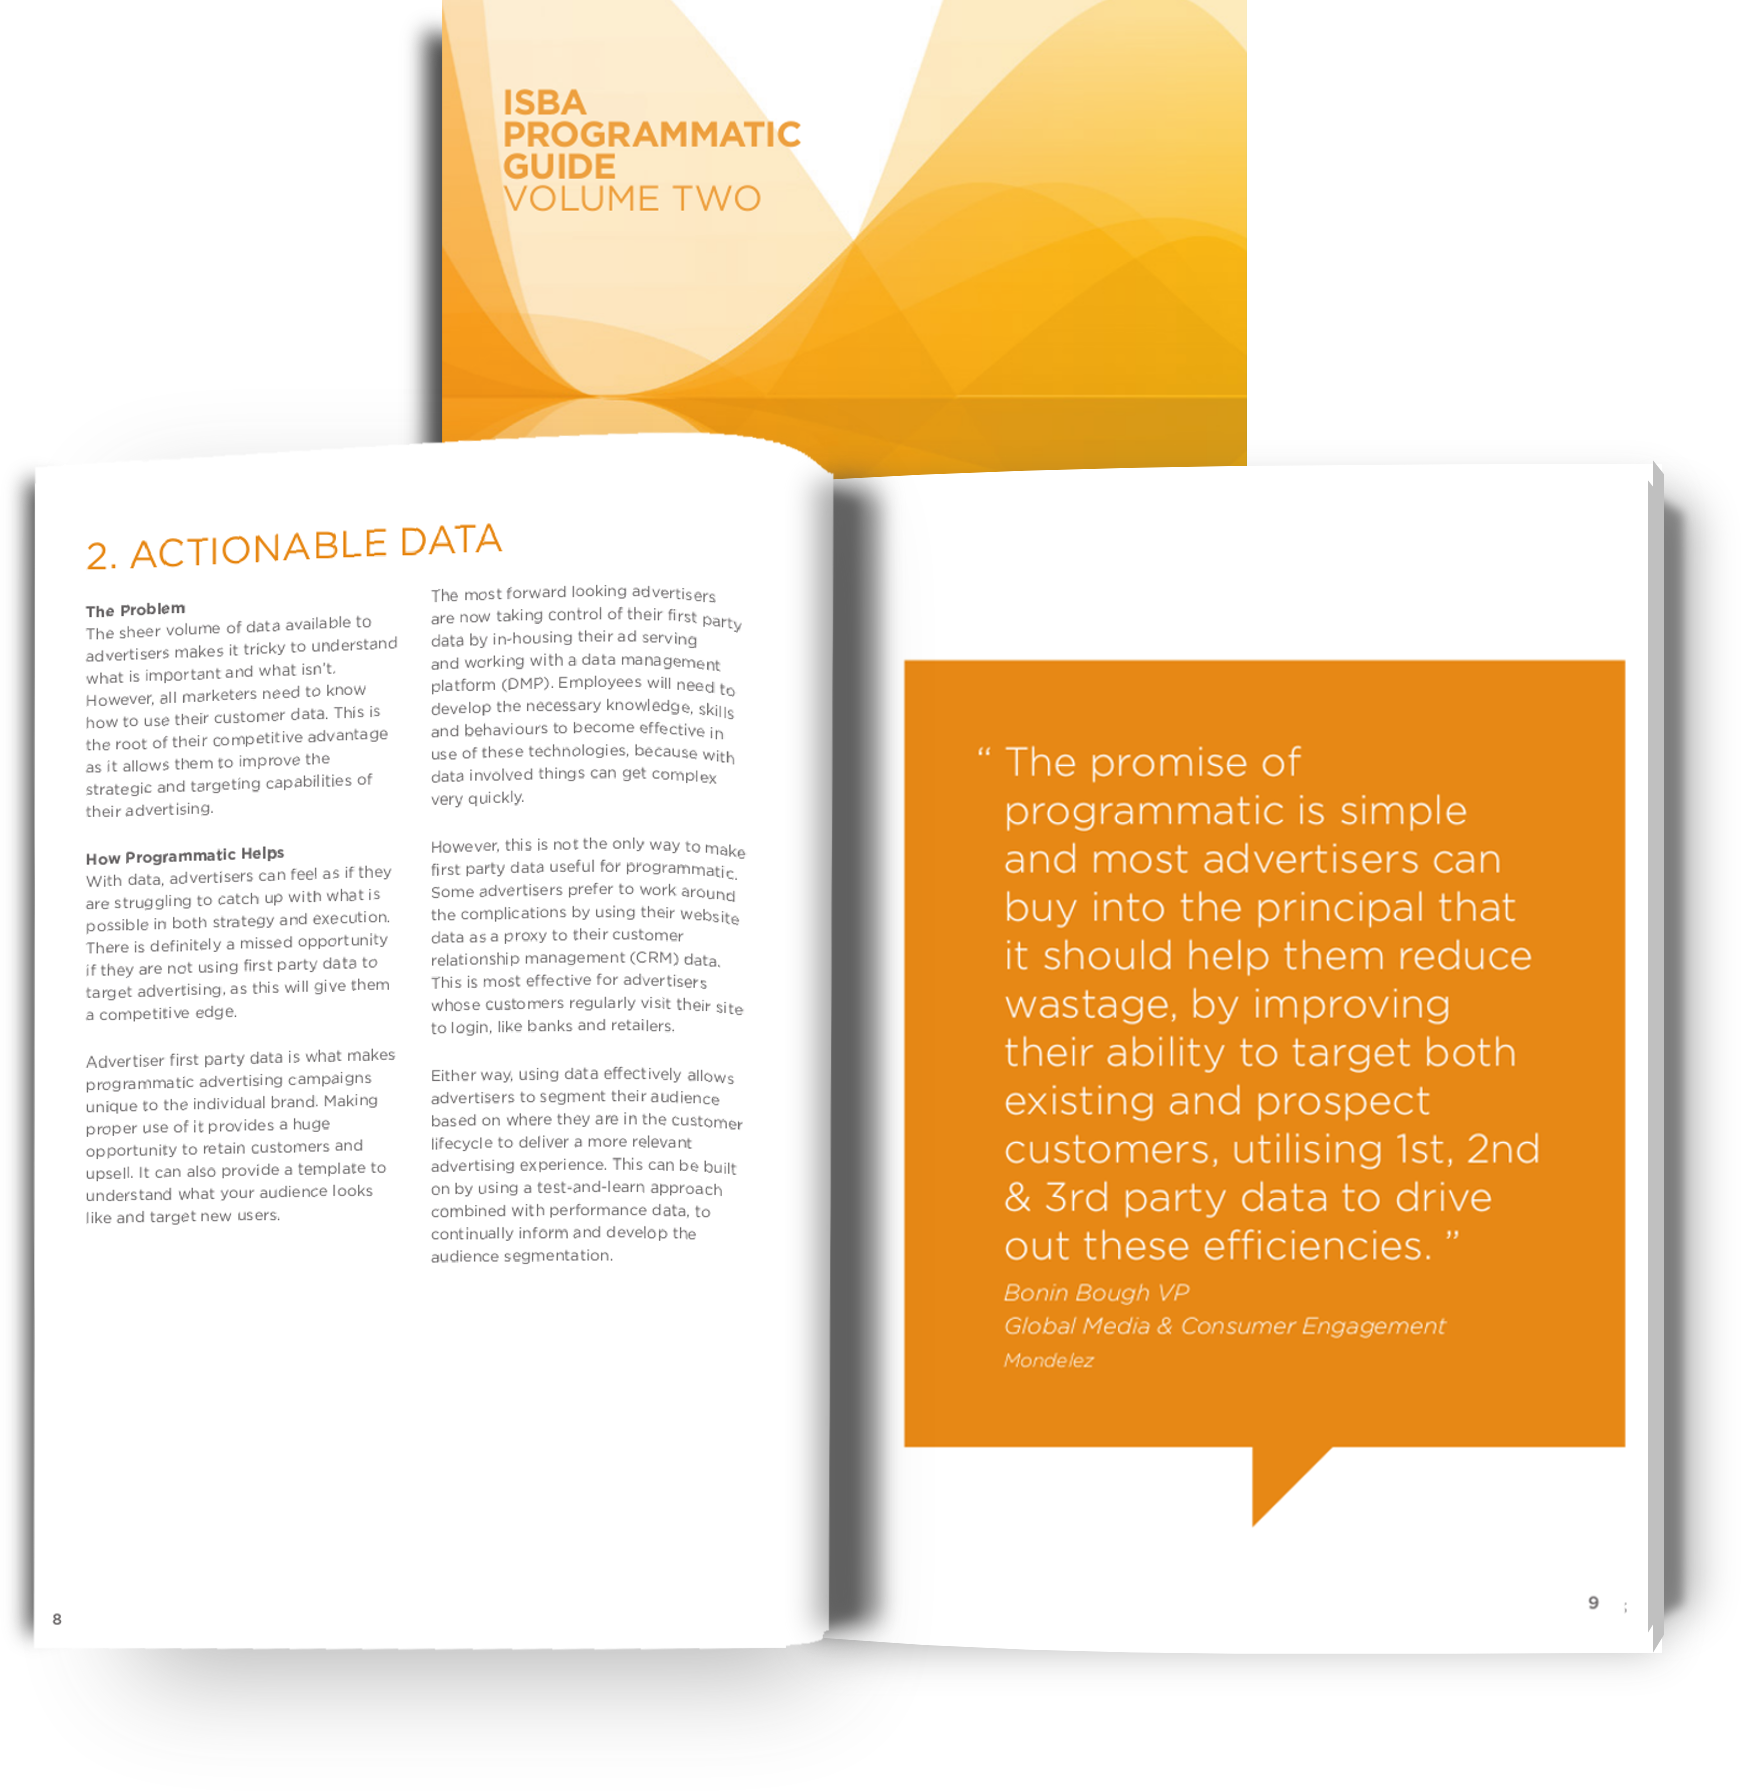 ISBA Guide to Programmatic Volume 2